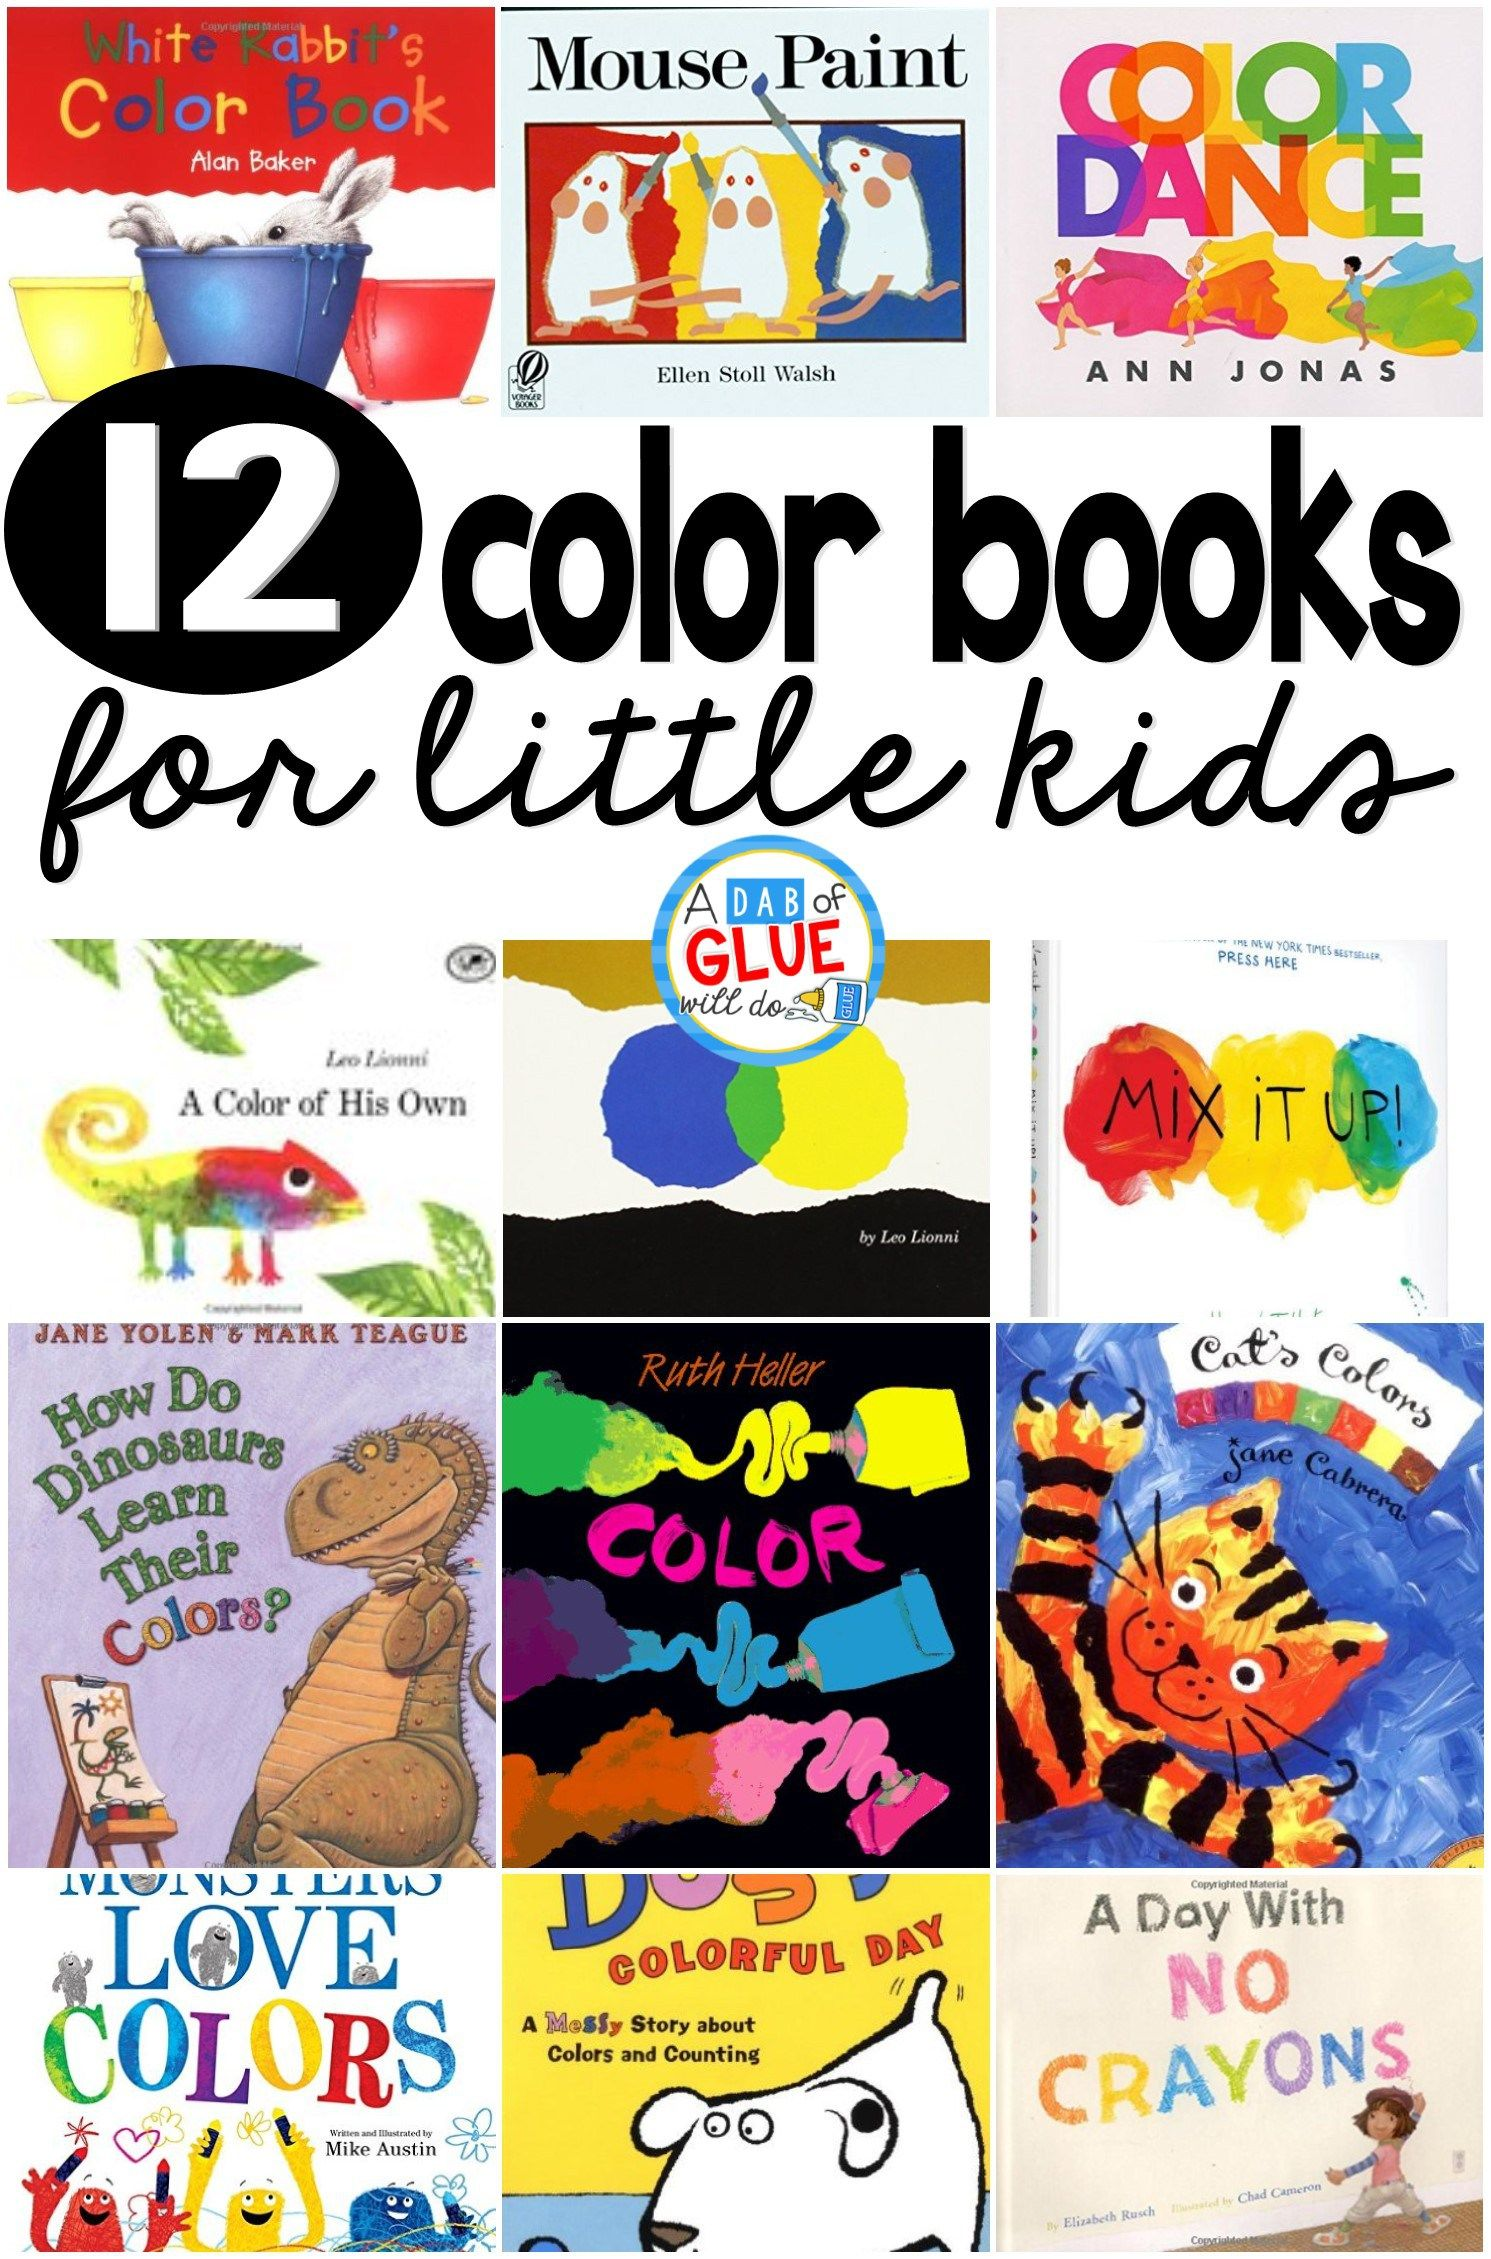 12 Color Books for Little Kids | Students, School and Books